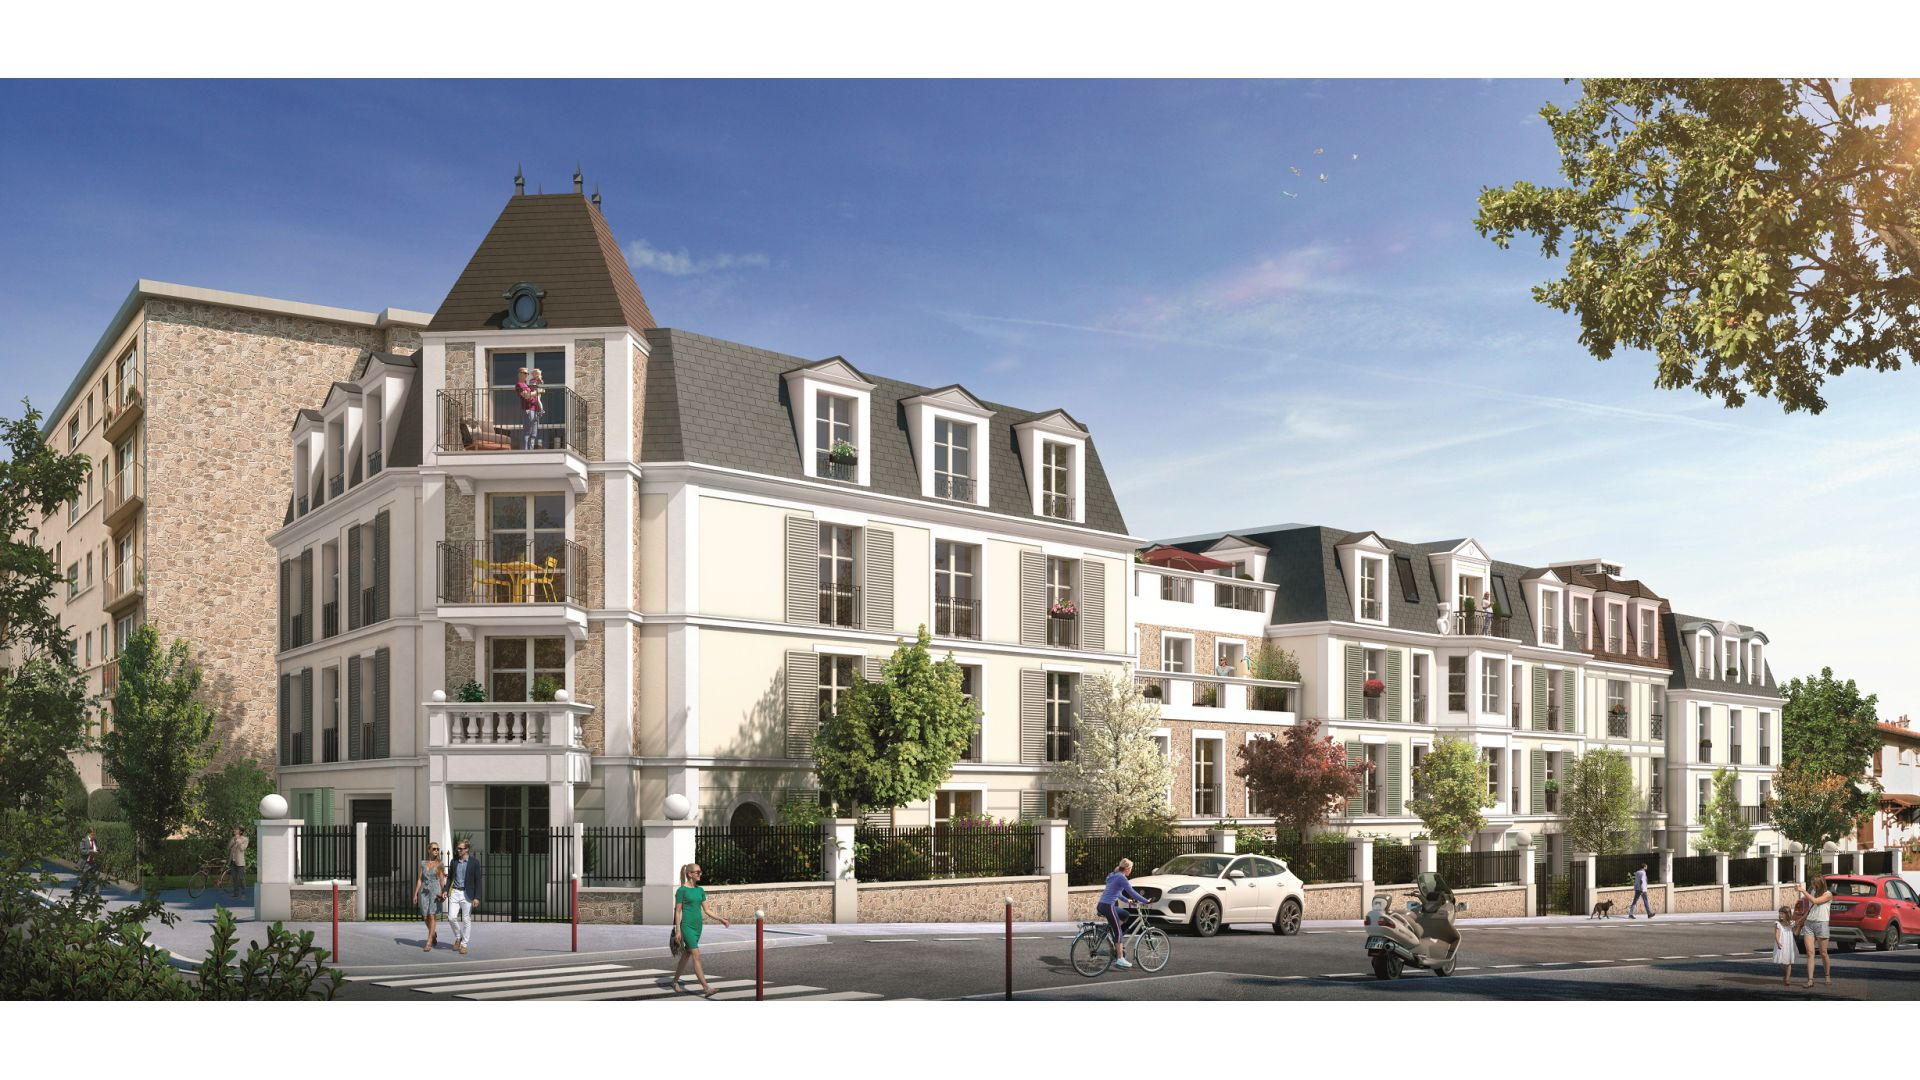 GreenCity immobilier - achat appartement neuf - Villiers Sur Marne - 94350 - Résidence Grand Angle